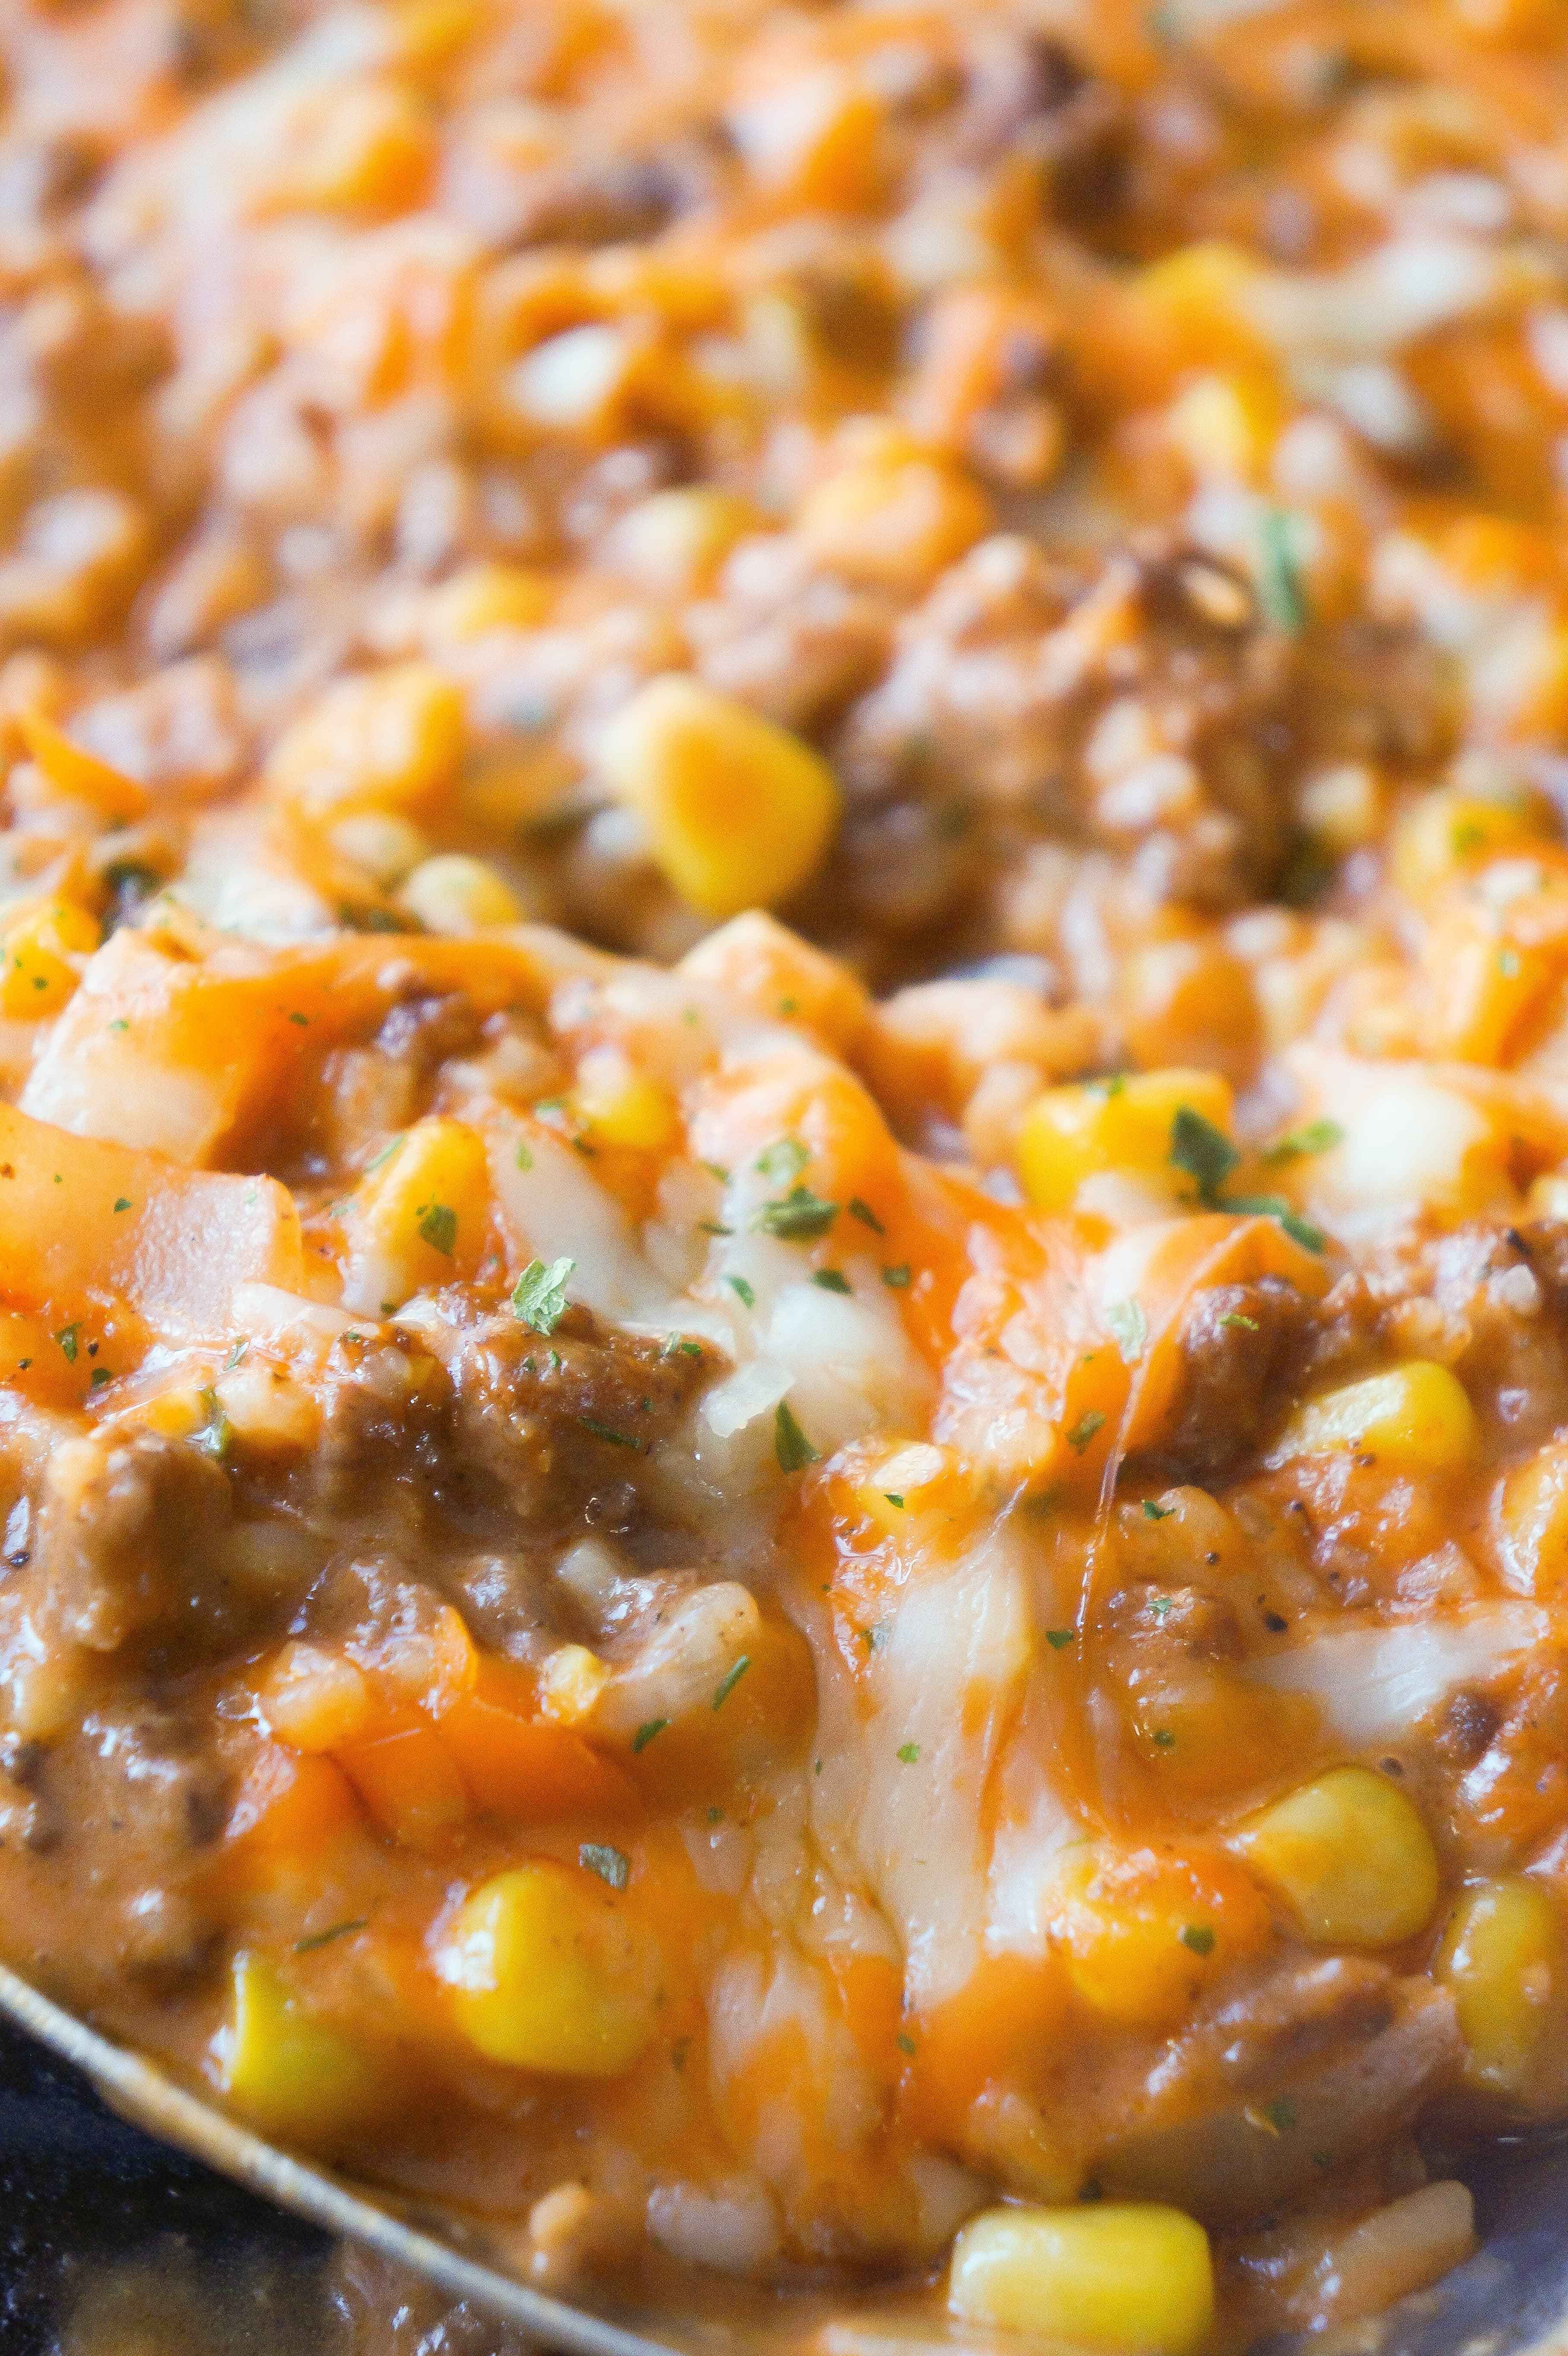 Cheesy Tomato Ground Beef And Rice Is An Easy Stove Top Dinner Recipe Packed With Flavour This Ground B Ground Beef Dishes Dinner With Ground Beef Beef Dinner